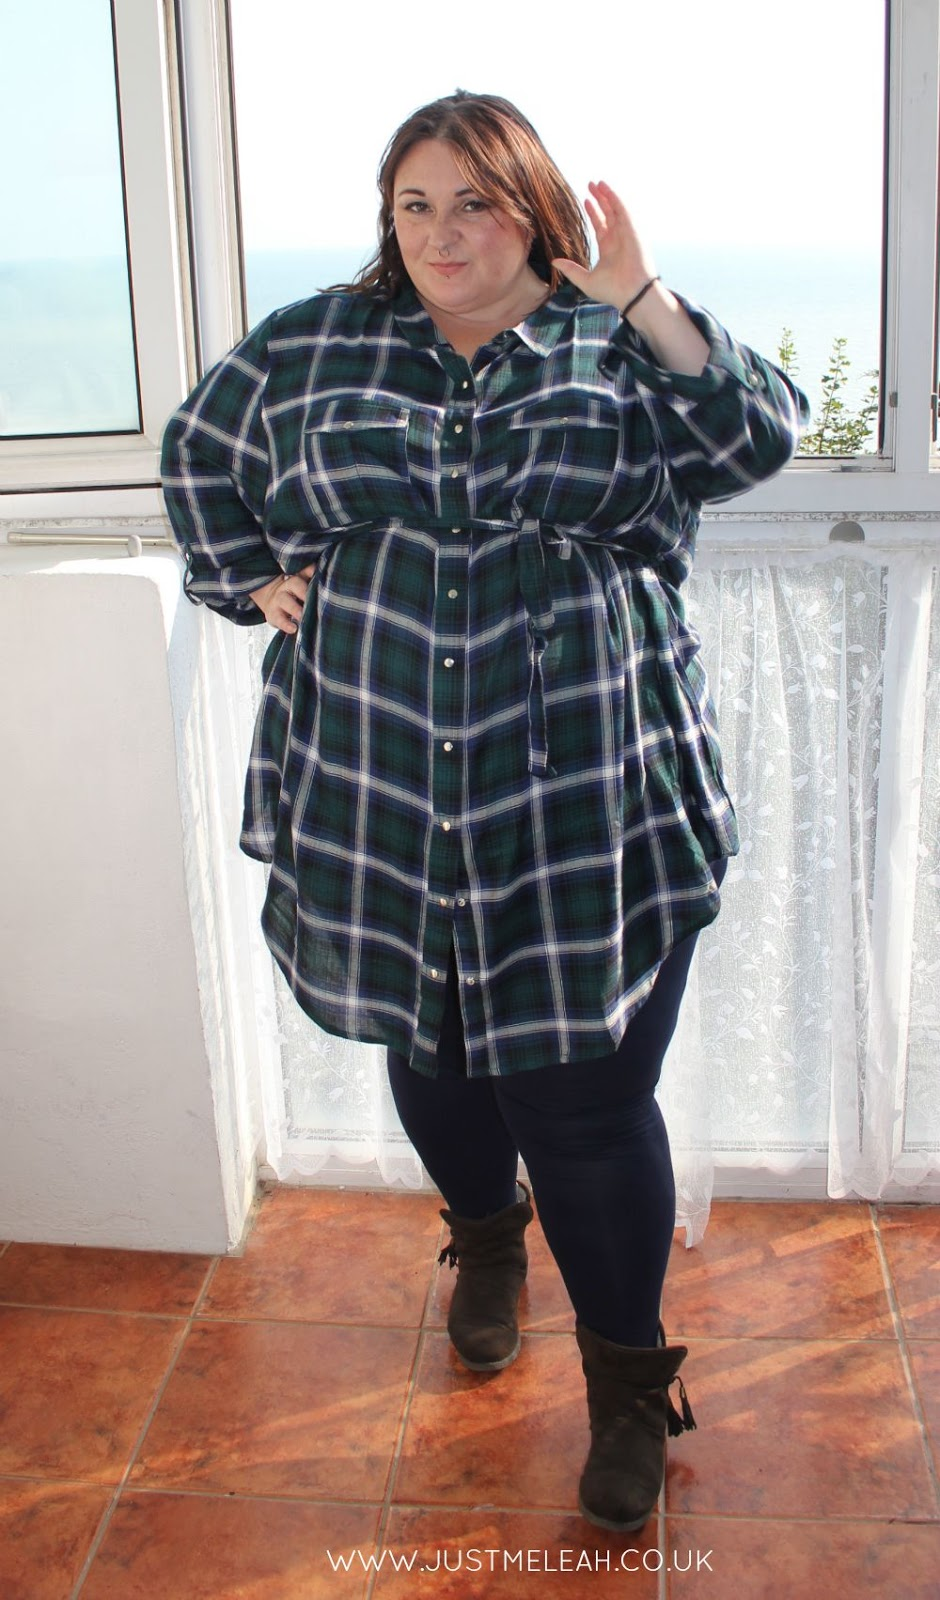 Transitional tartan for autumn/winter and how to wear it